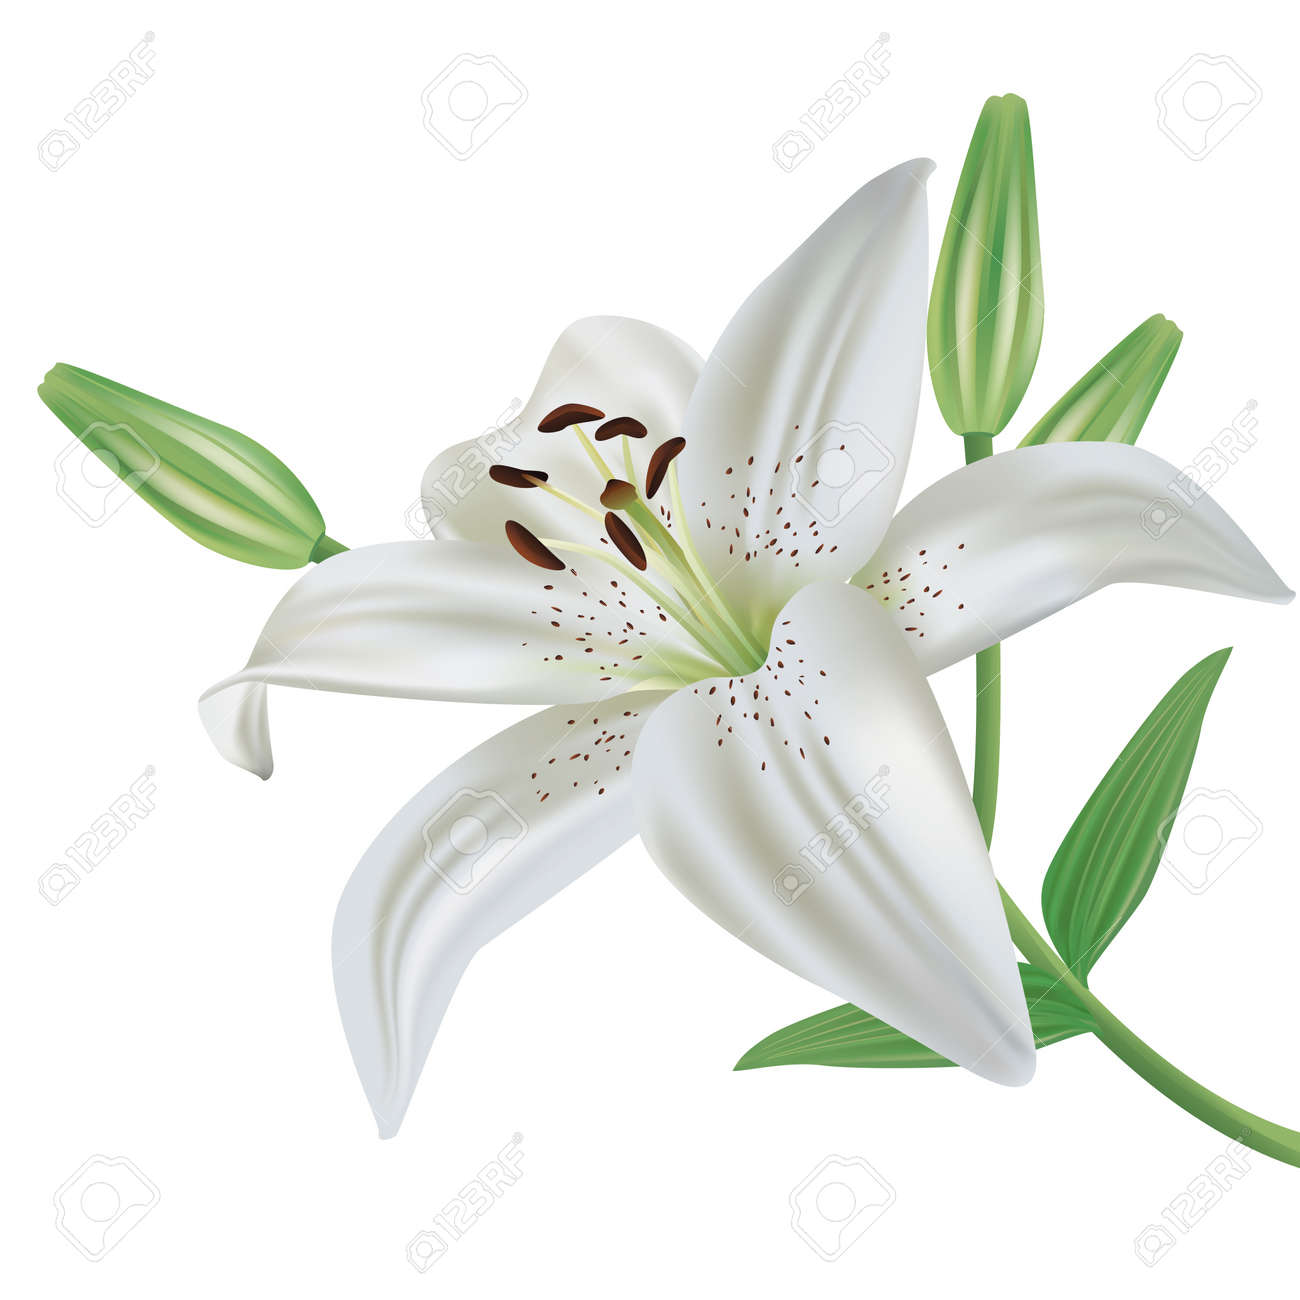 38894 lily flower cliparts stock vector and royalty free lily white lily flower realistic isolated on white background vector illustration izmirmasajfo